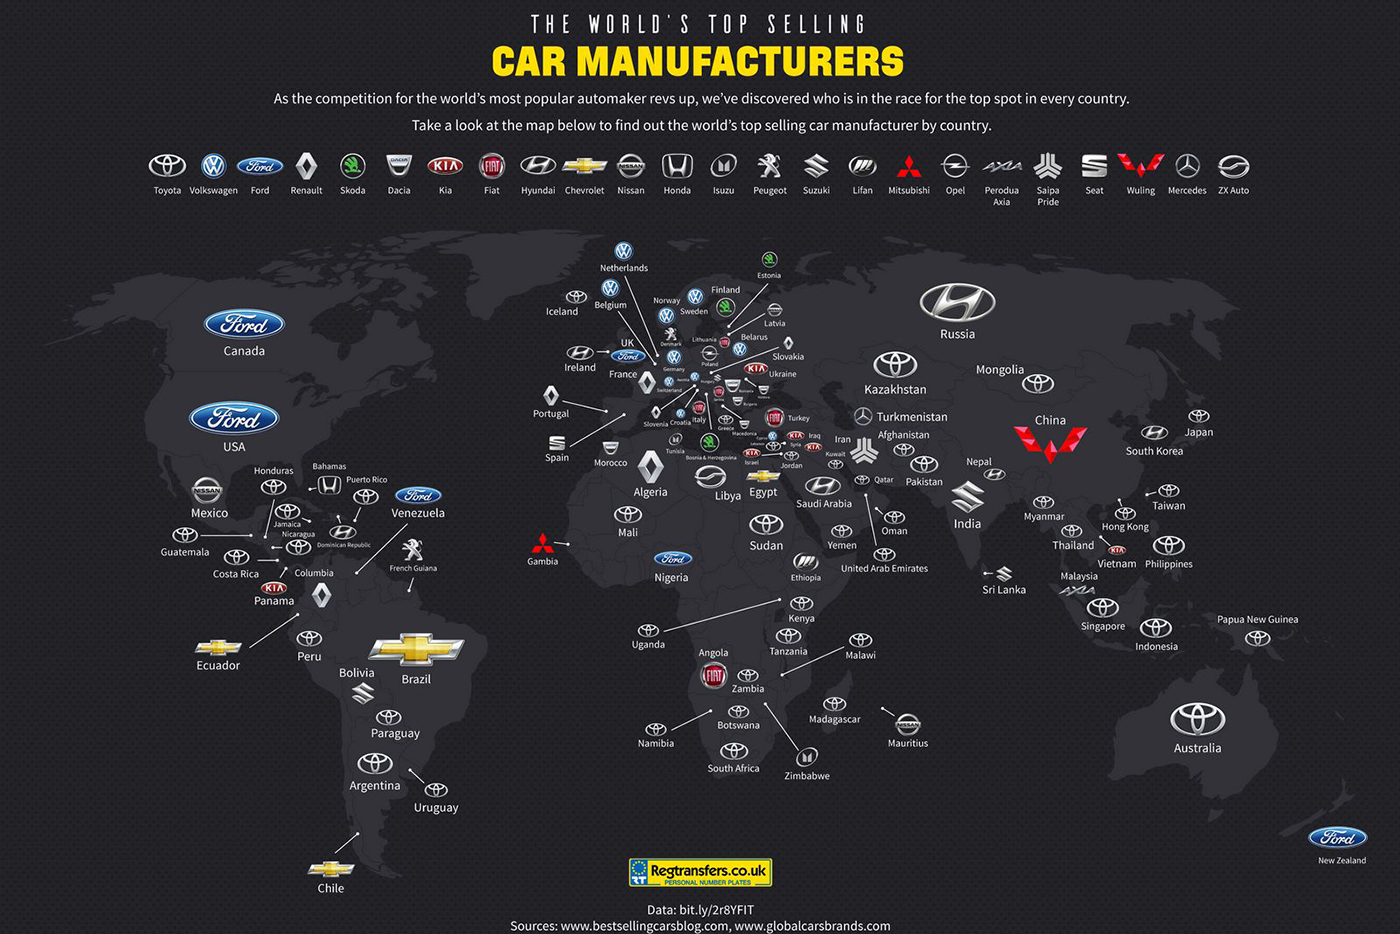 highest-selling-automakers-by-country.jpg